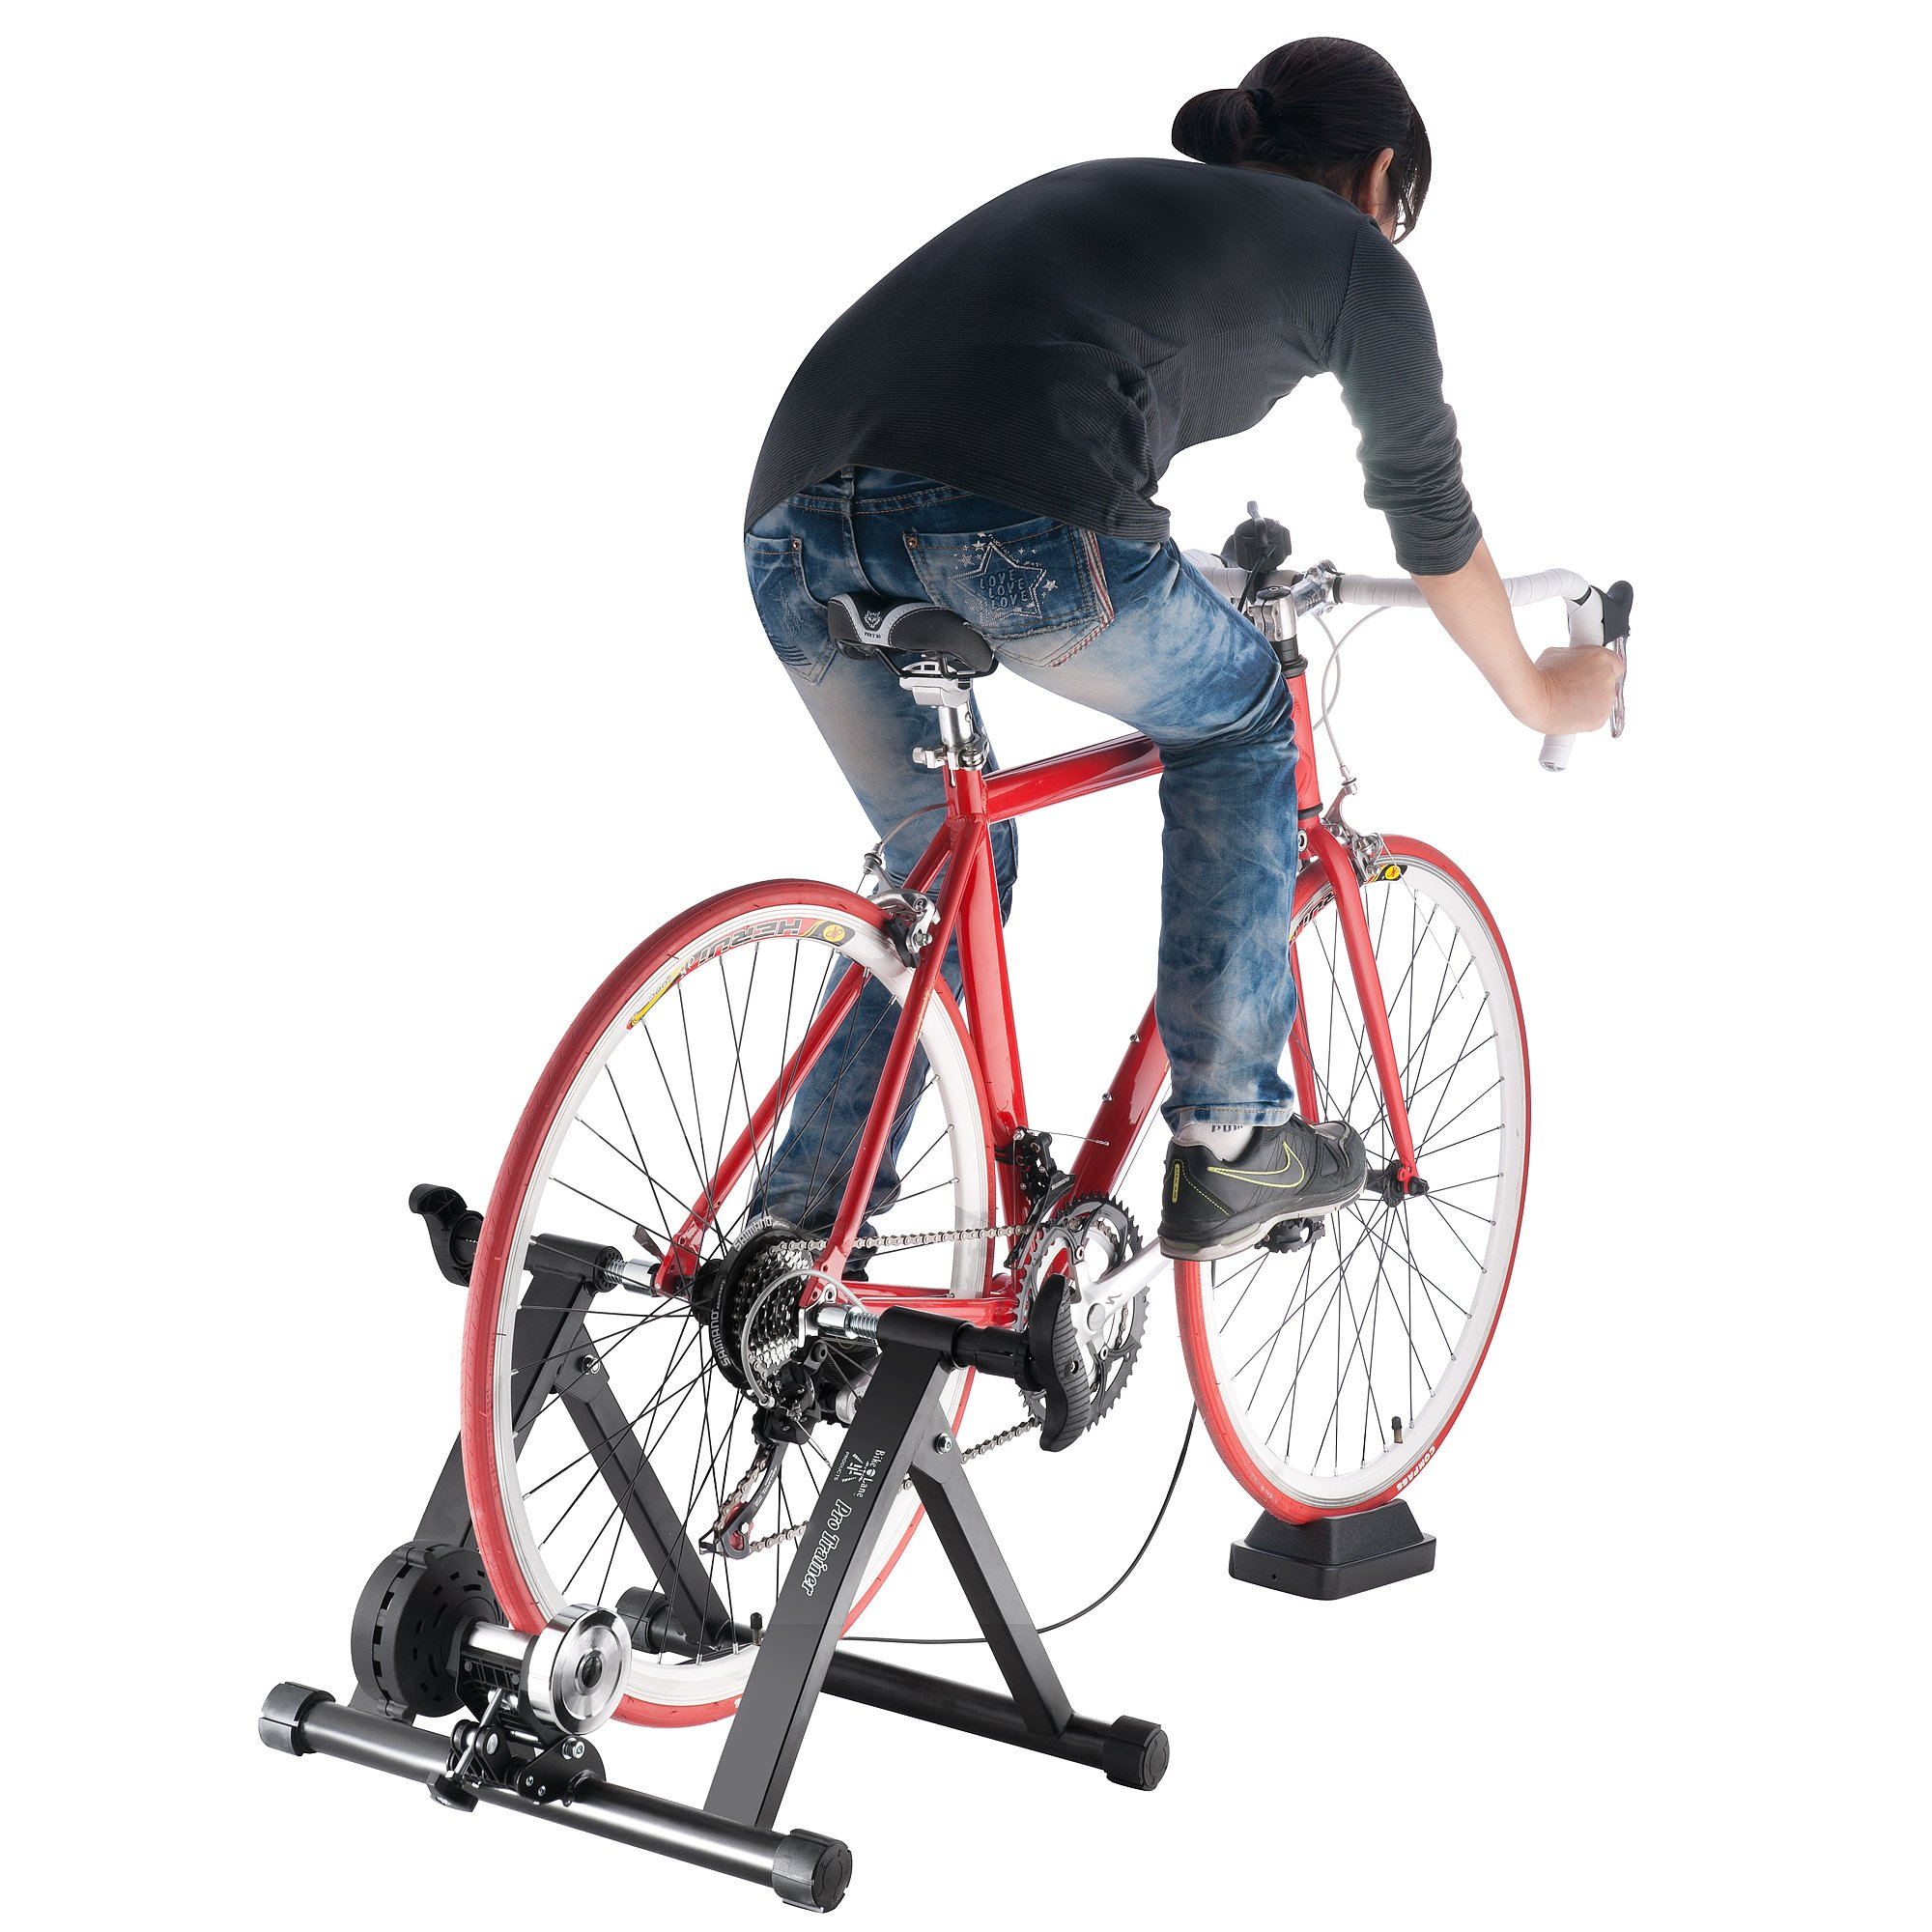 Bike Lane Pro Trainer Bicycle Indoor Trainer Exercise Machine Ride All Year by Bike Lane (Image #4)